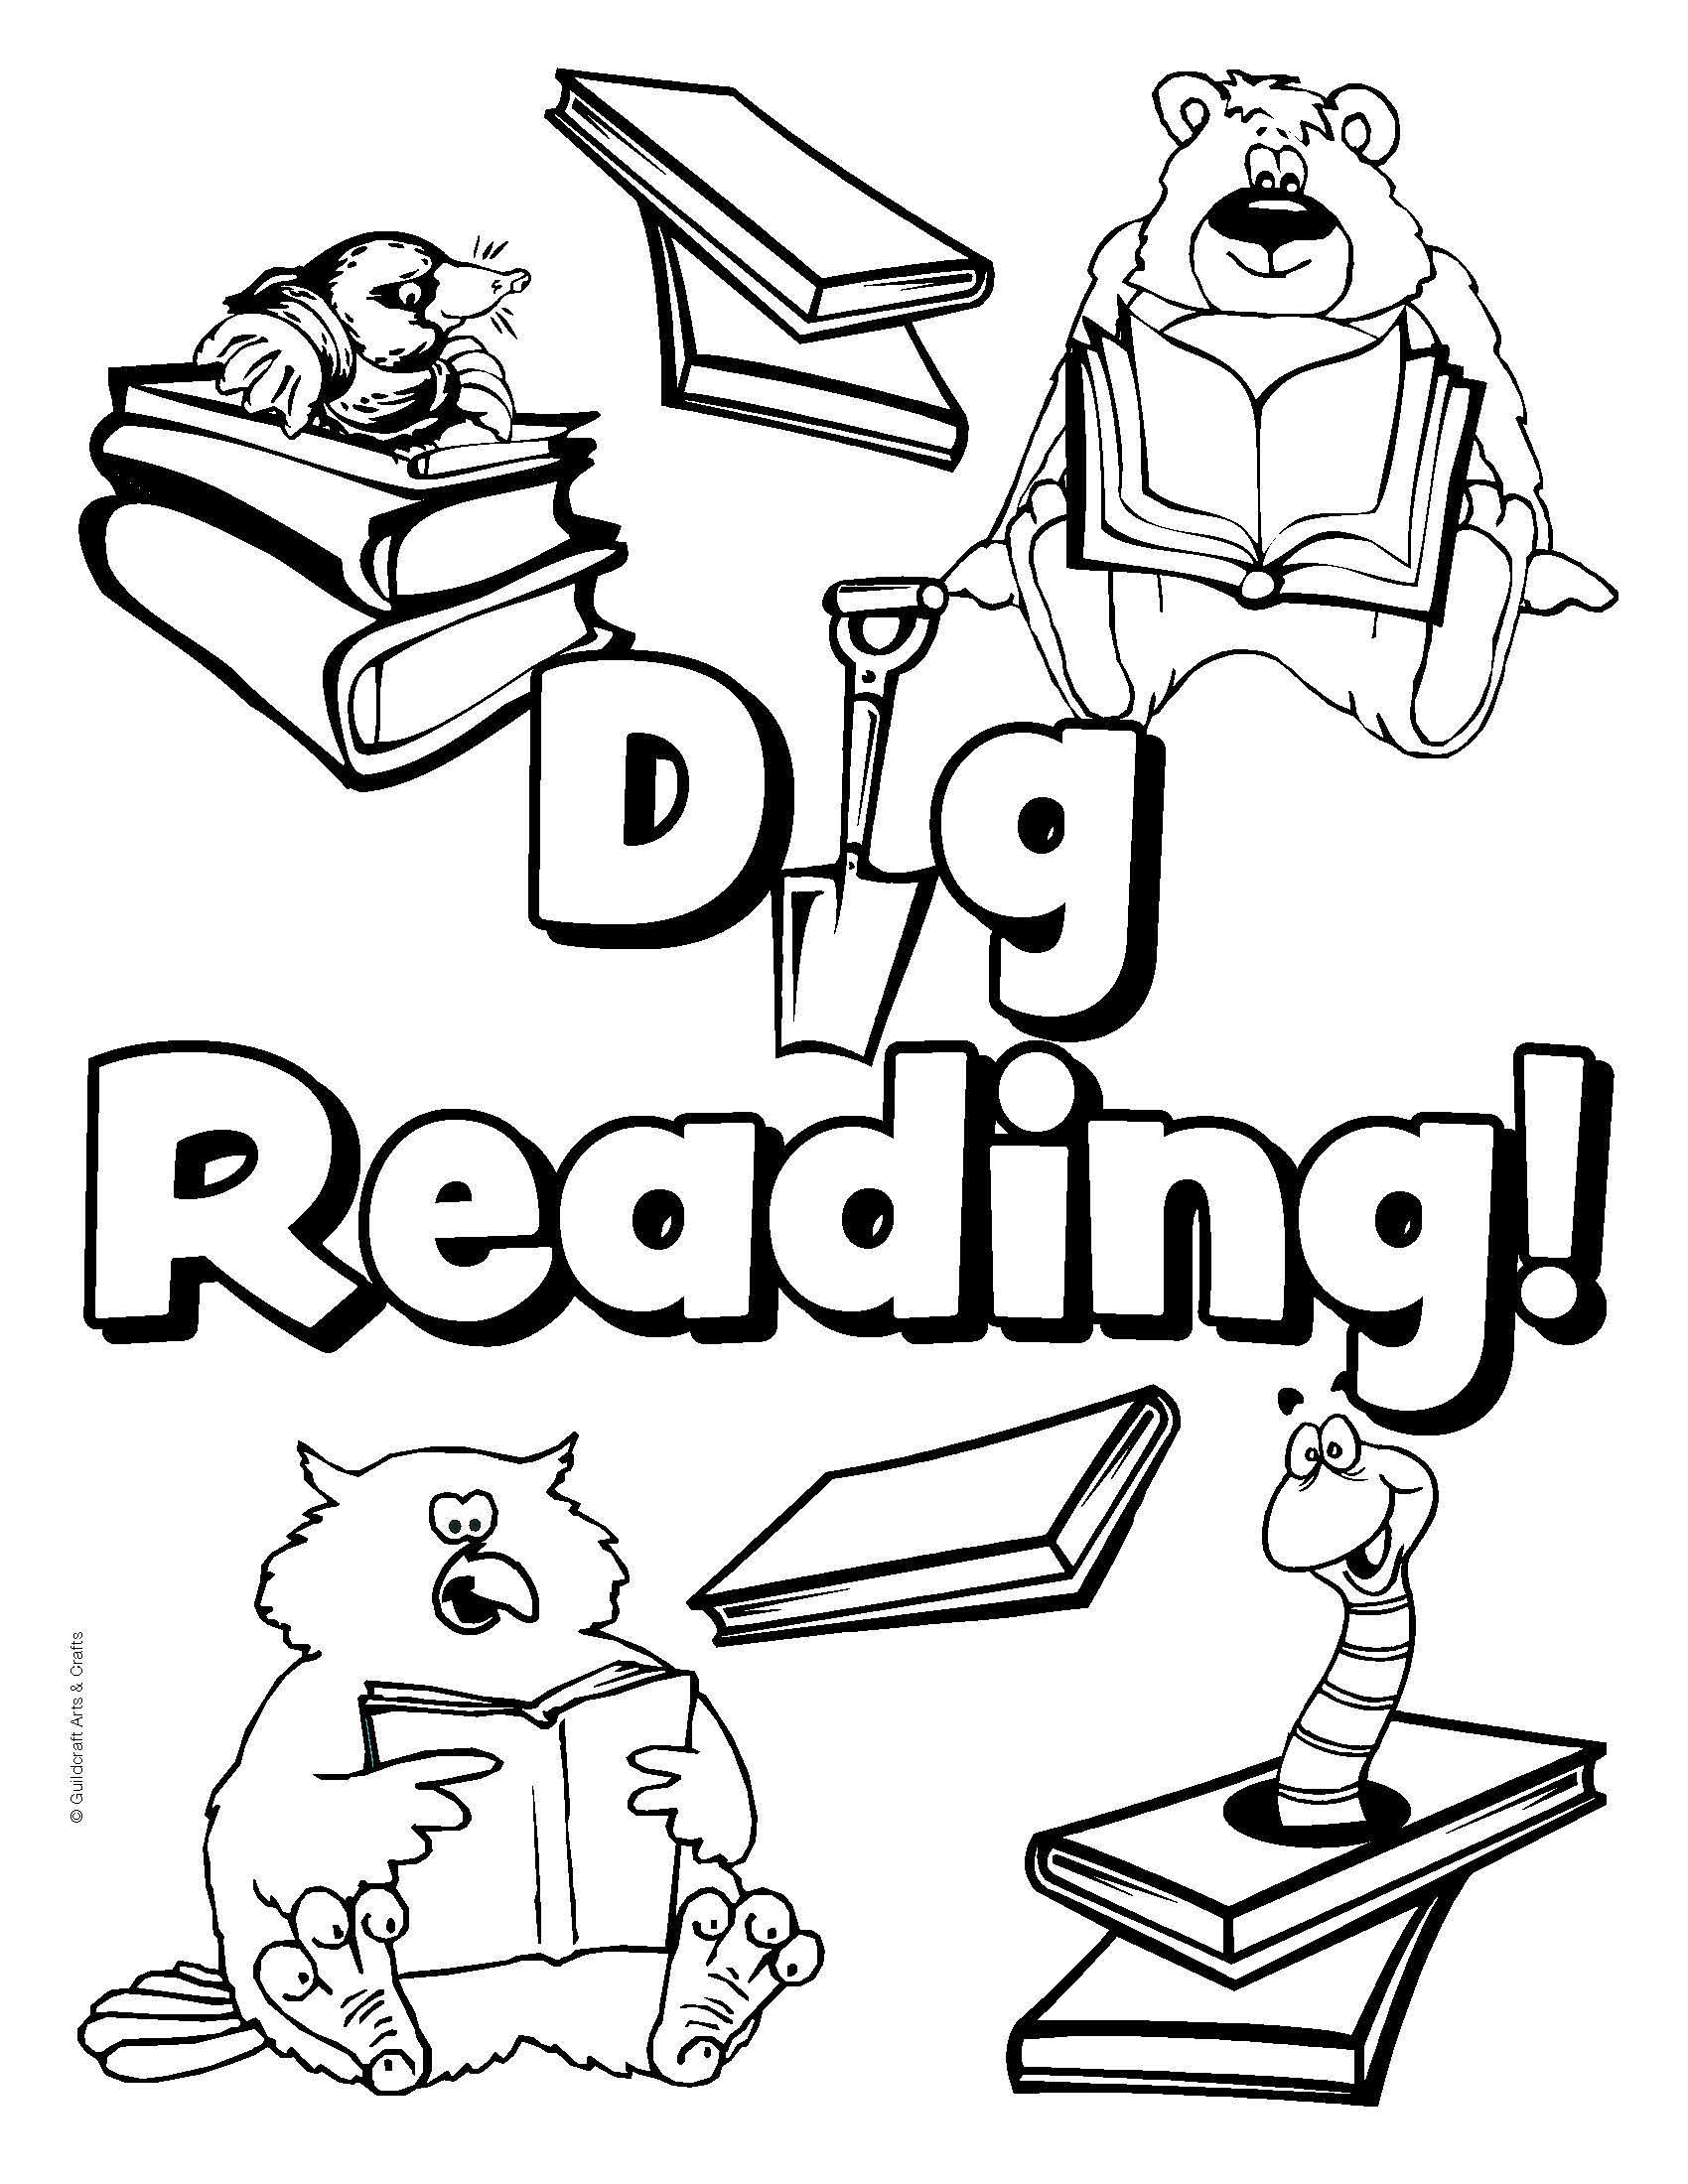 Coloring Club From The Pond Kindergarten Coloring Pages Cute Coloring Pages Coloring Books